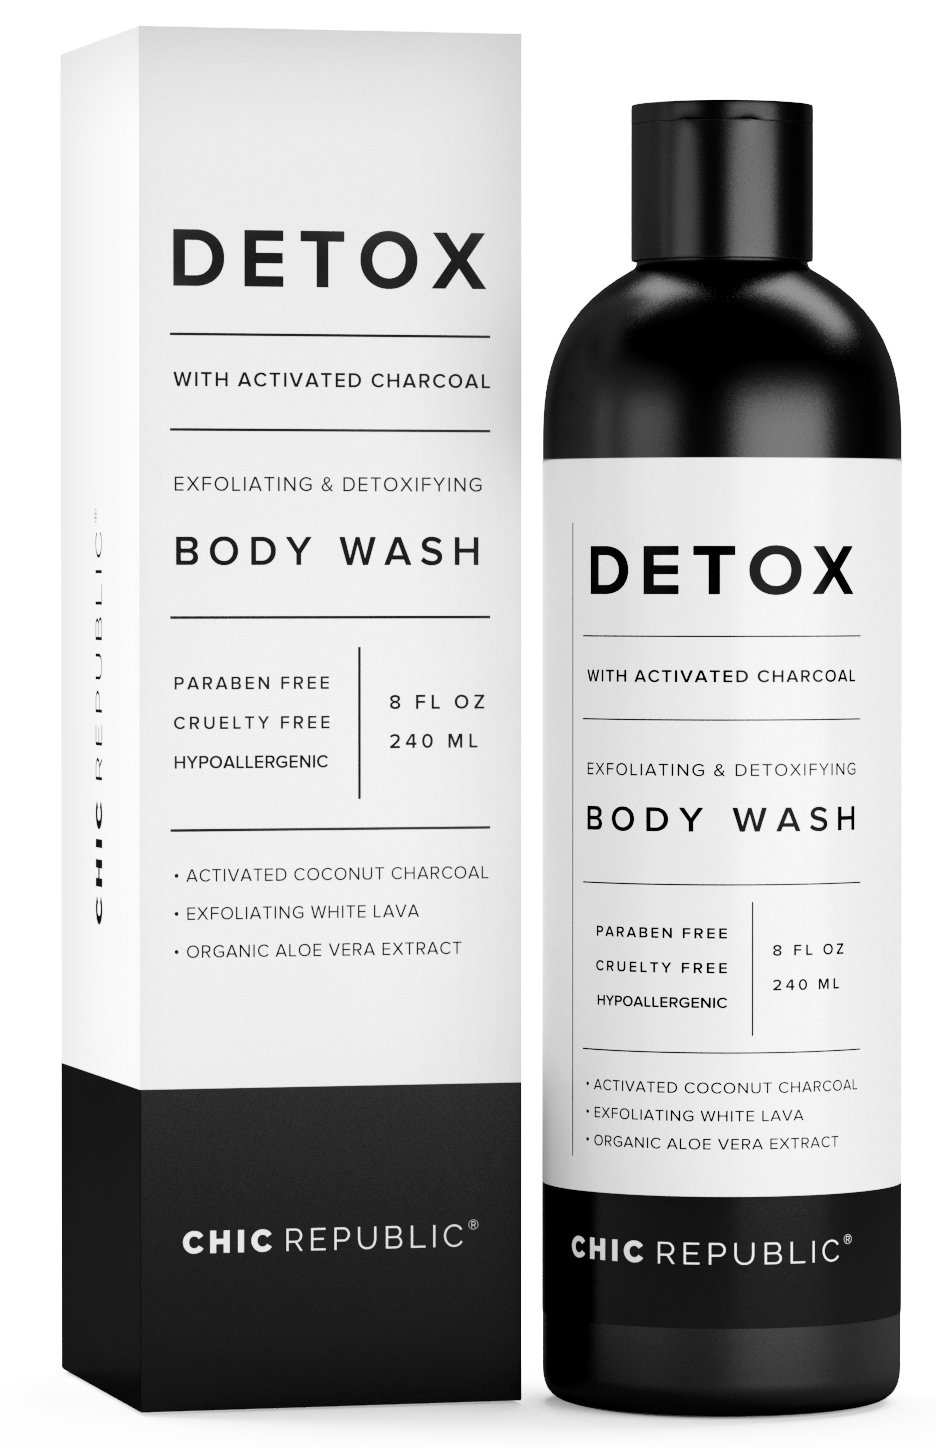 Natural Body Wash with Activated Coconut Charcoal, Exfoliating Wash White Lava, Aloe Vera Plant Extract, as Detox & Hypoallergenic Shower Gel, for Skin Rejuvenation, Sensitive Skin, Women Men